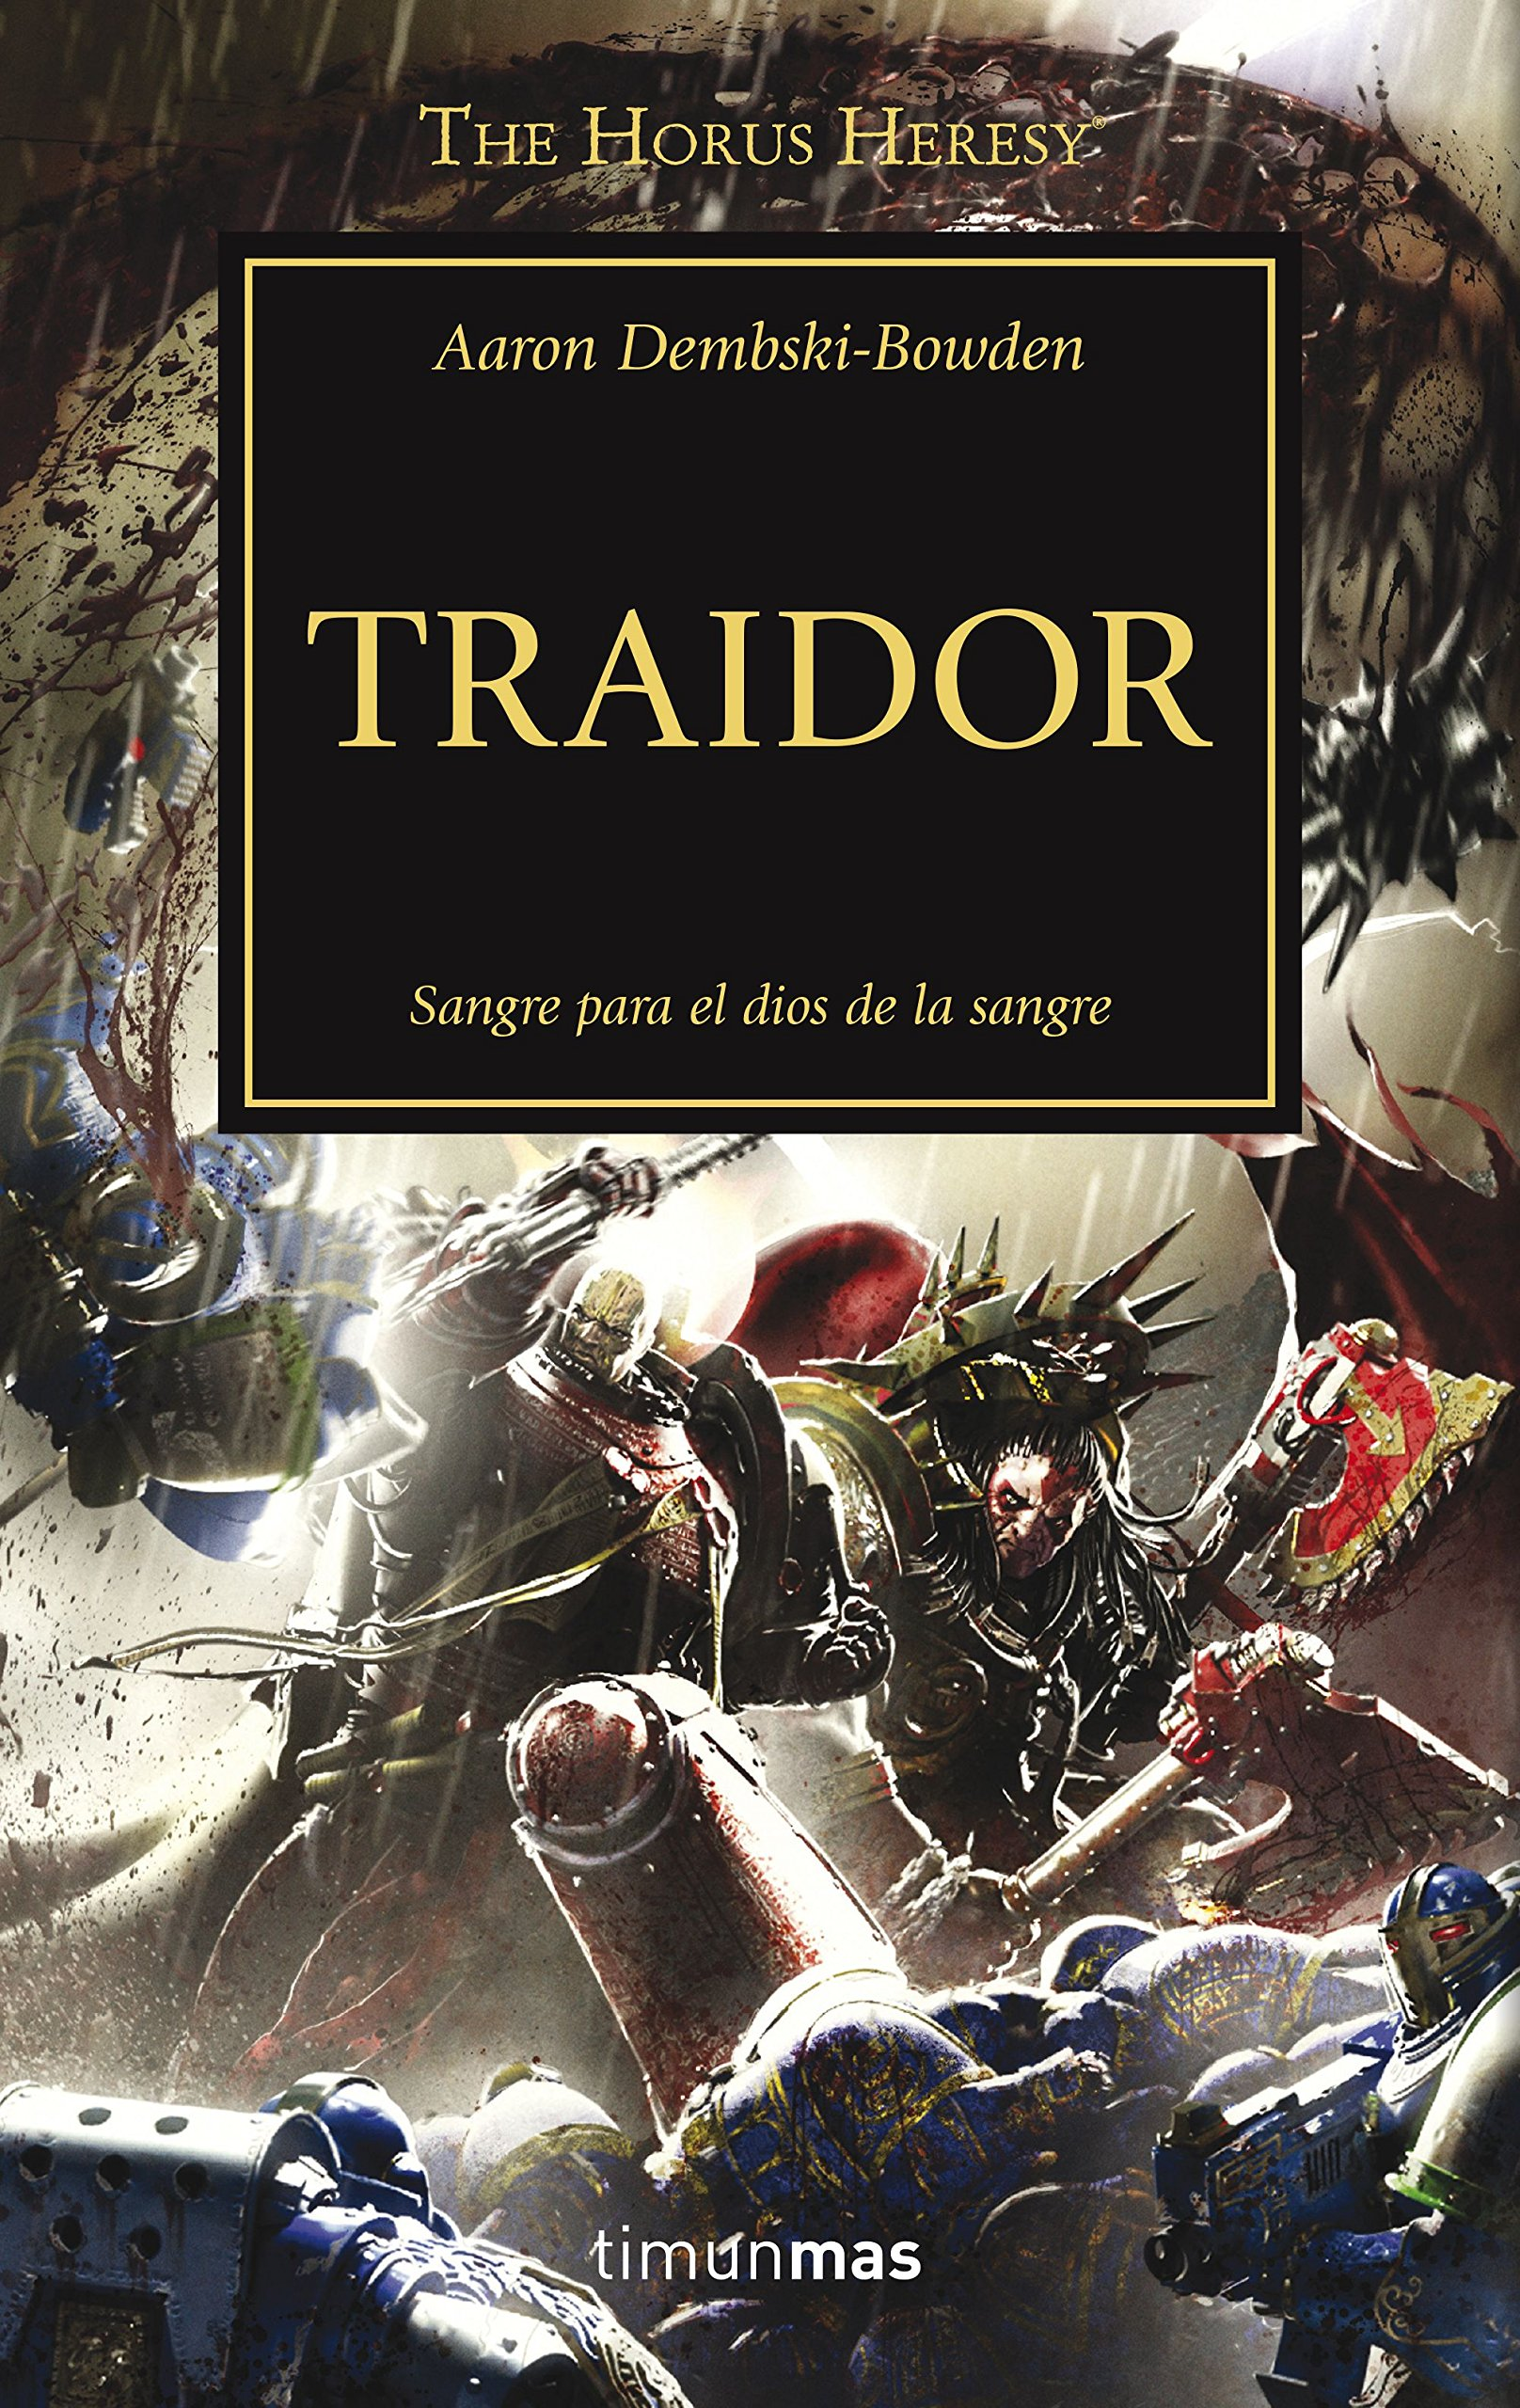 Traidor nº 24/54 (Warhammer The Horus Heresy): Amazon.es: Dembski ...